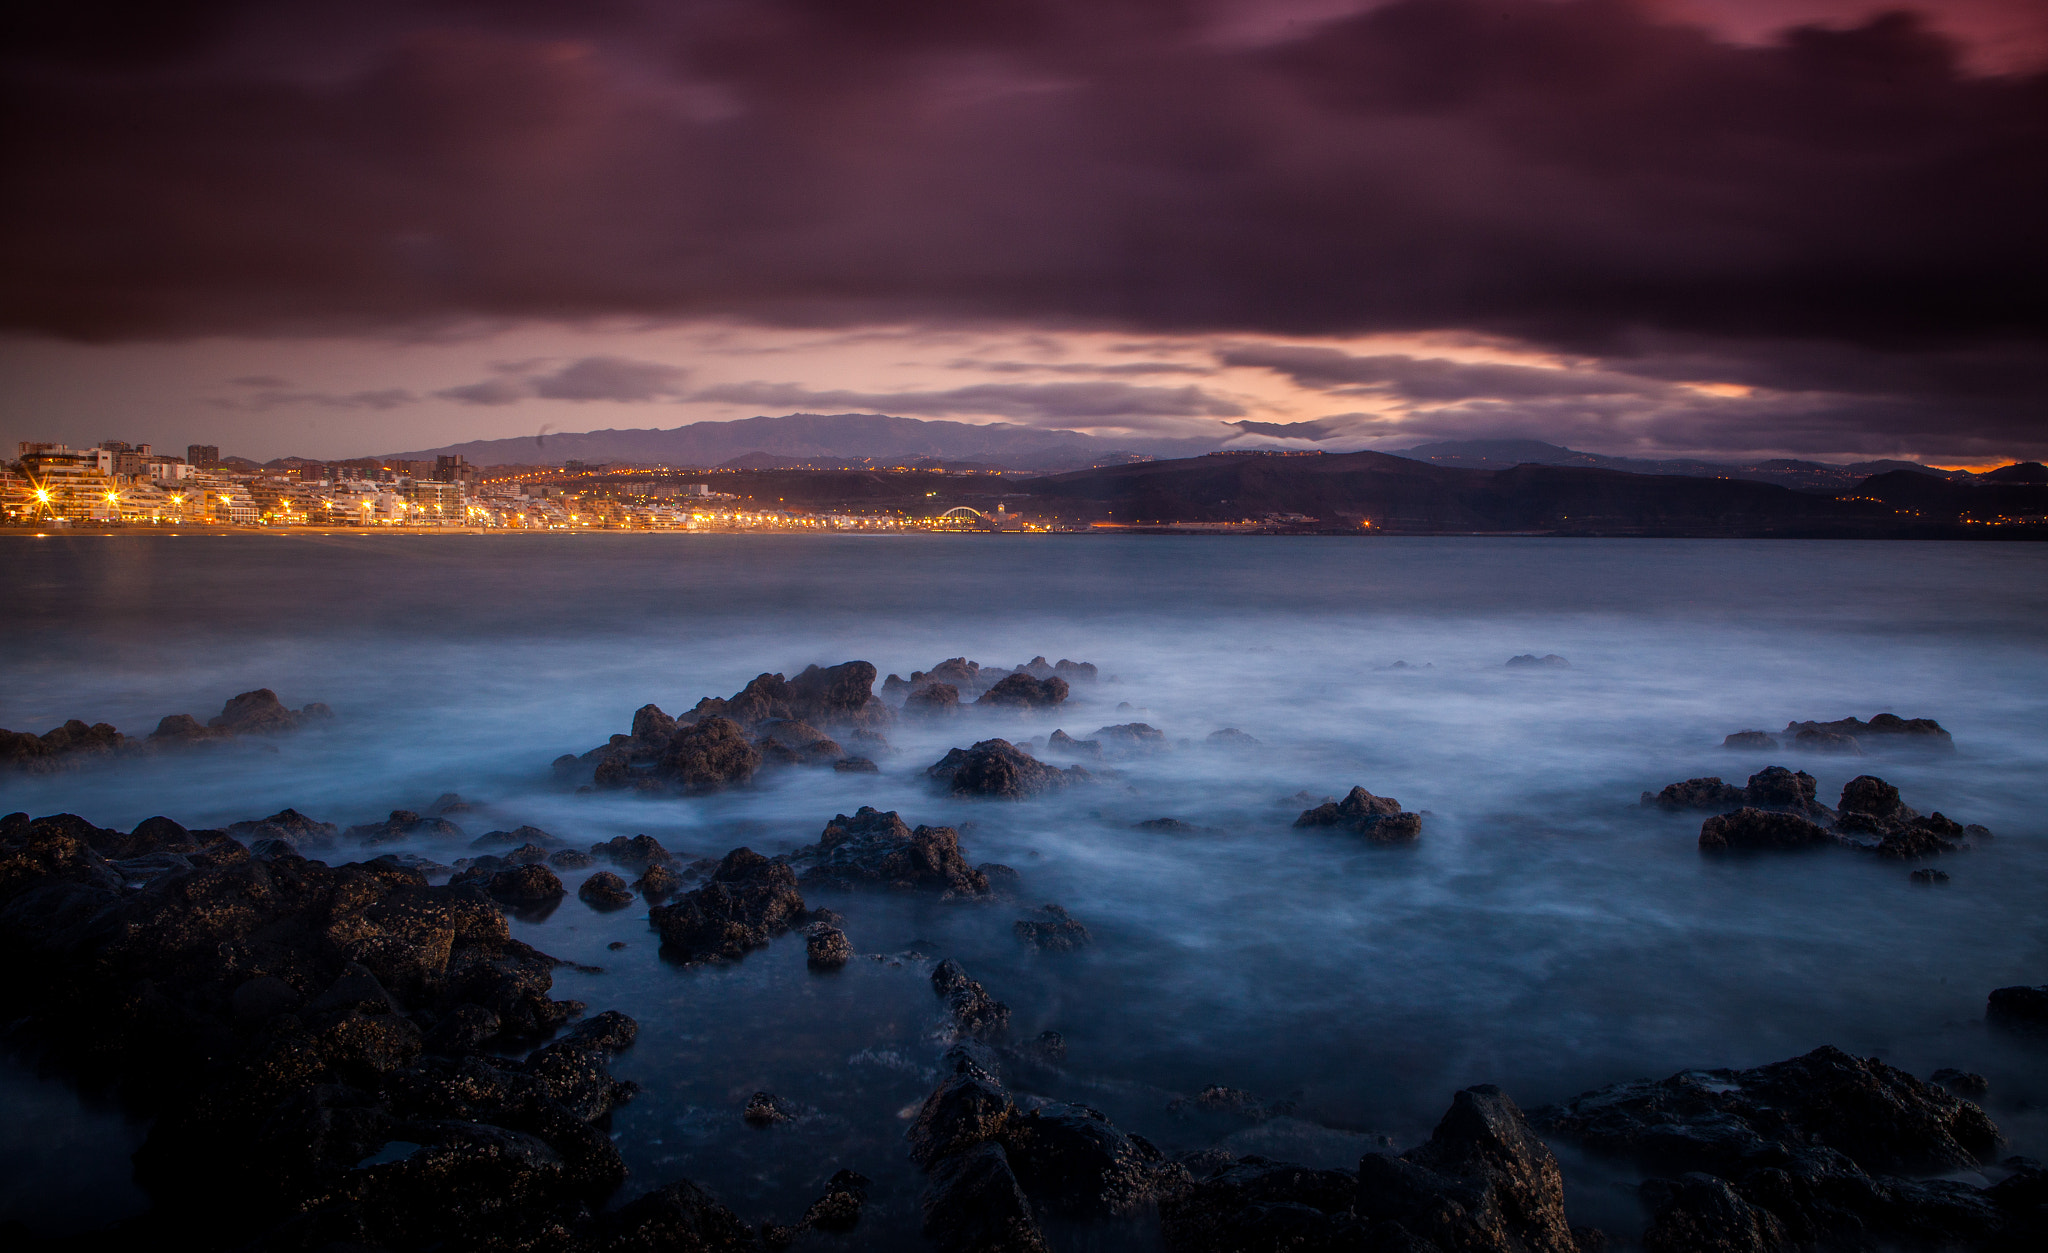 Photograph The city and the sea by Ramon Grosso  on 500px